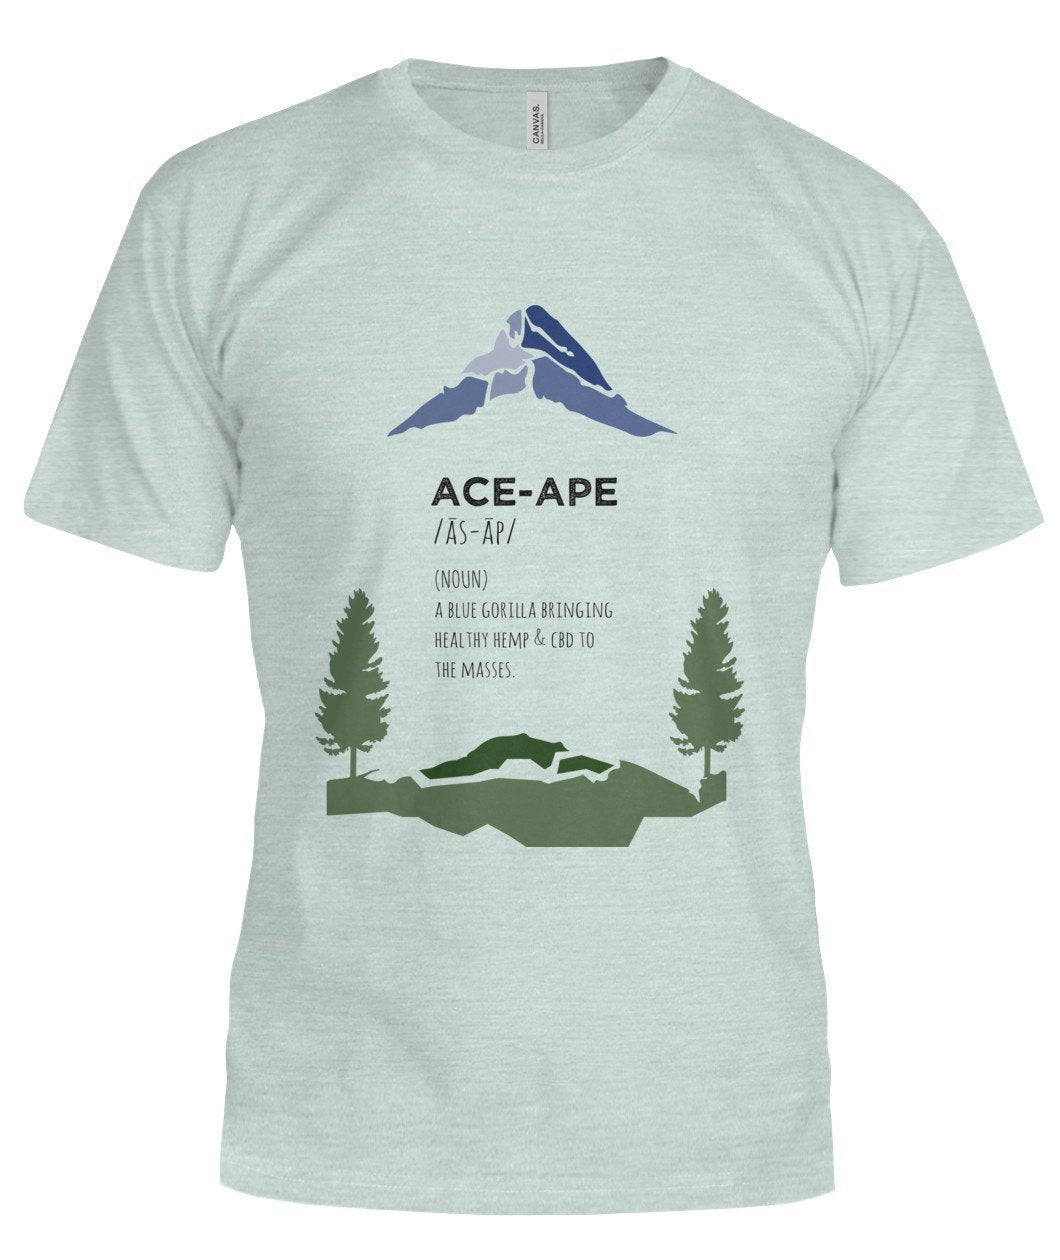 "Short Sleeves Heather Mint / S Define ""AceApe"" Unisex Tee (Semi-Fit) AceApe CBD Dispensary"